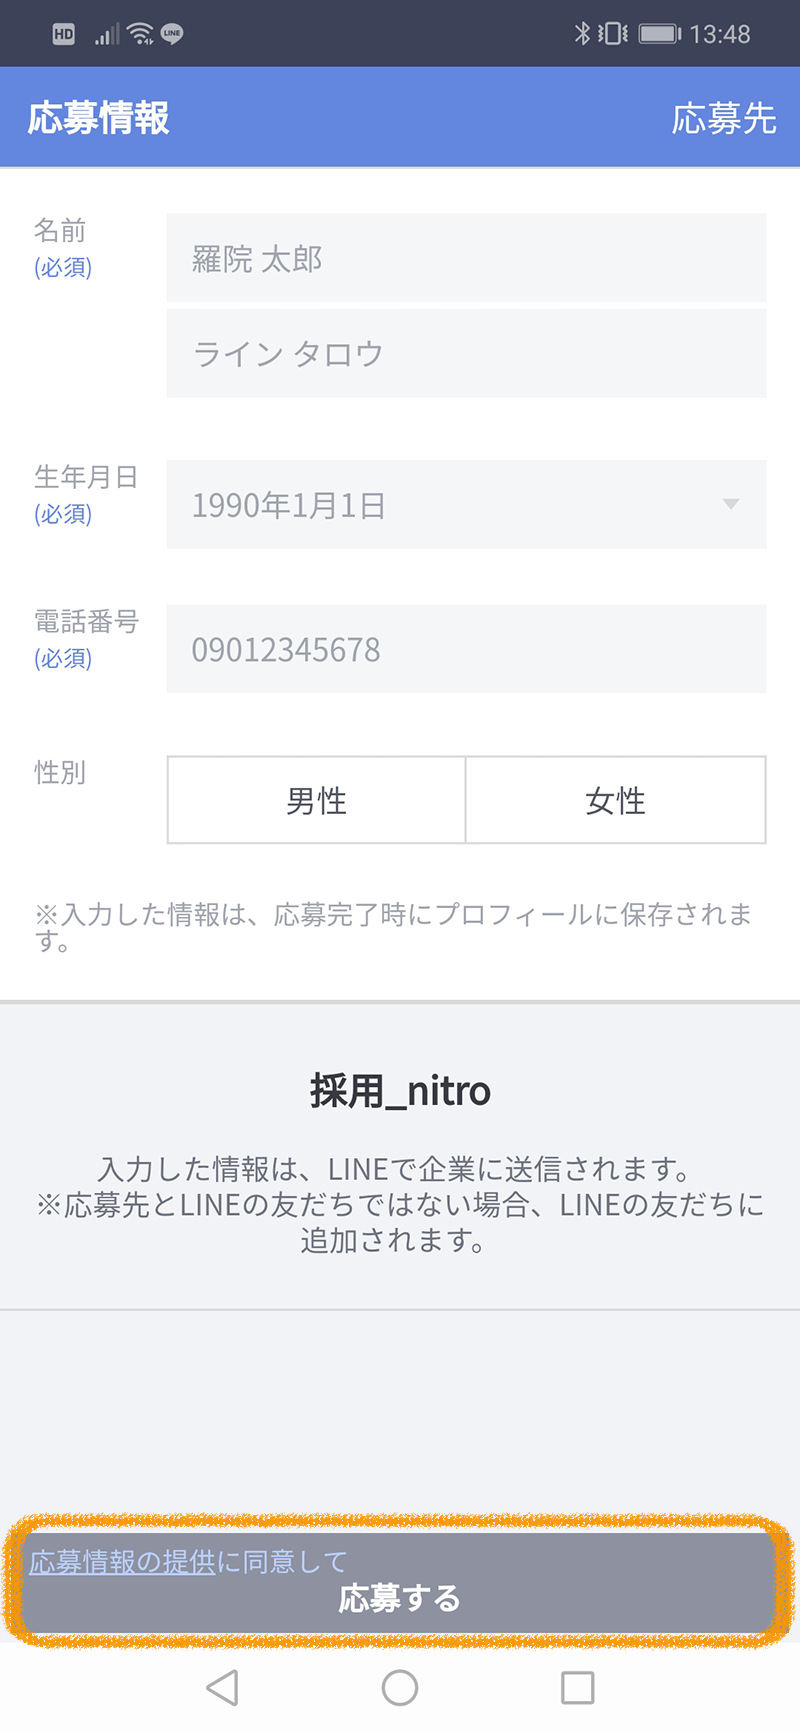 『LINEバイト』応募する